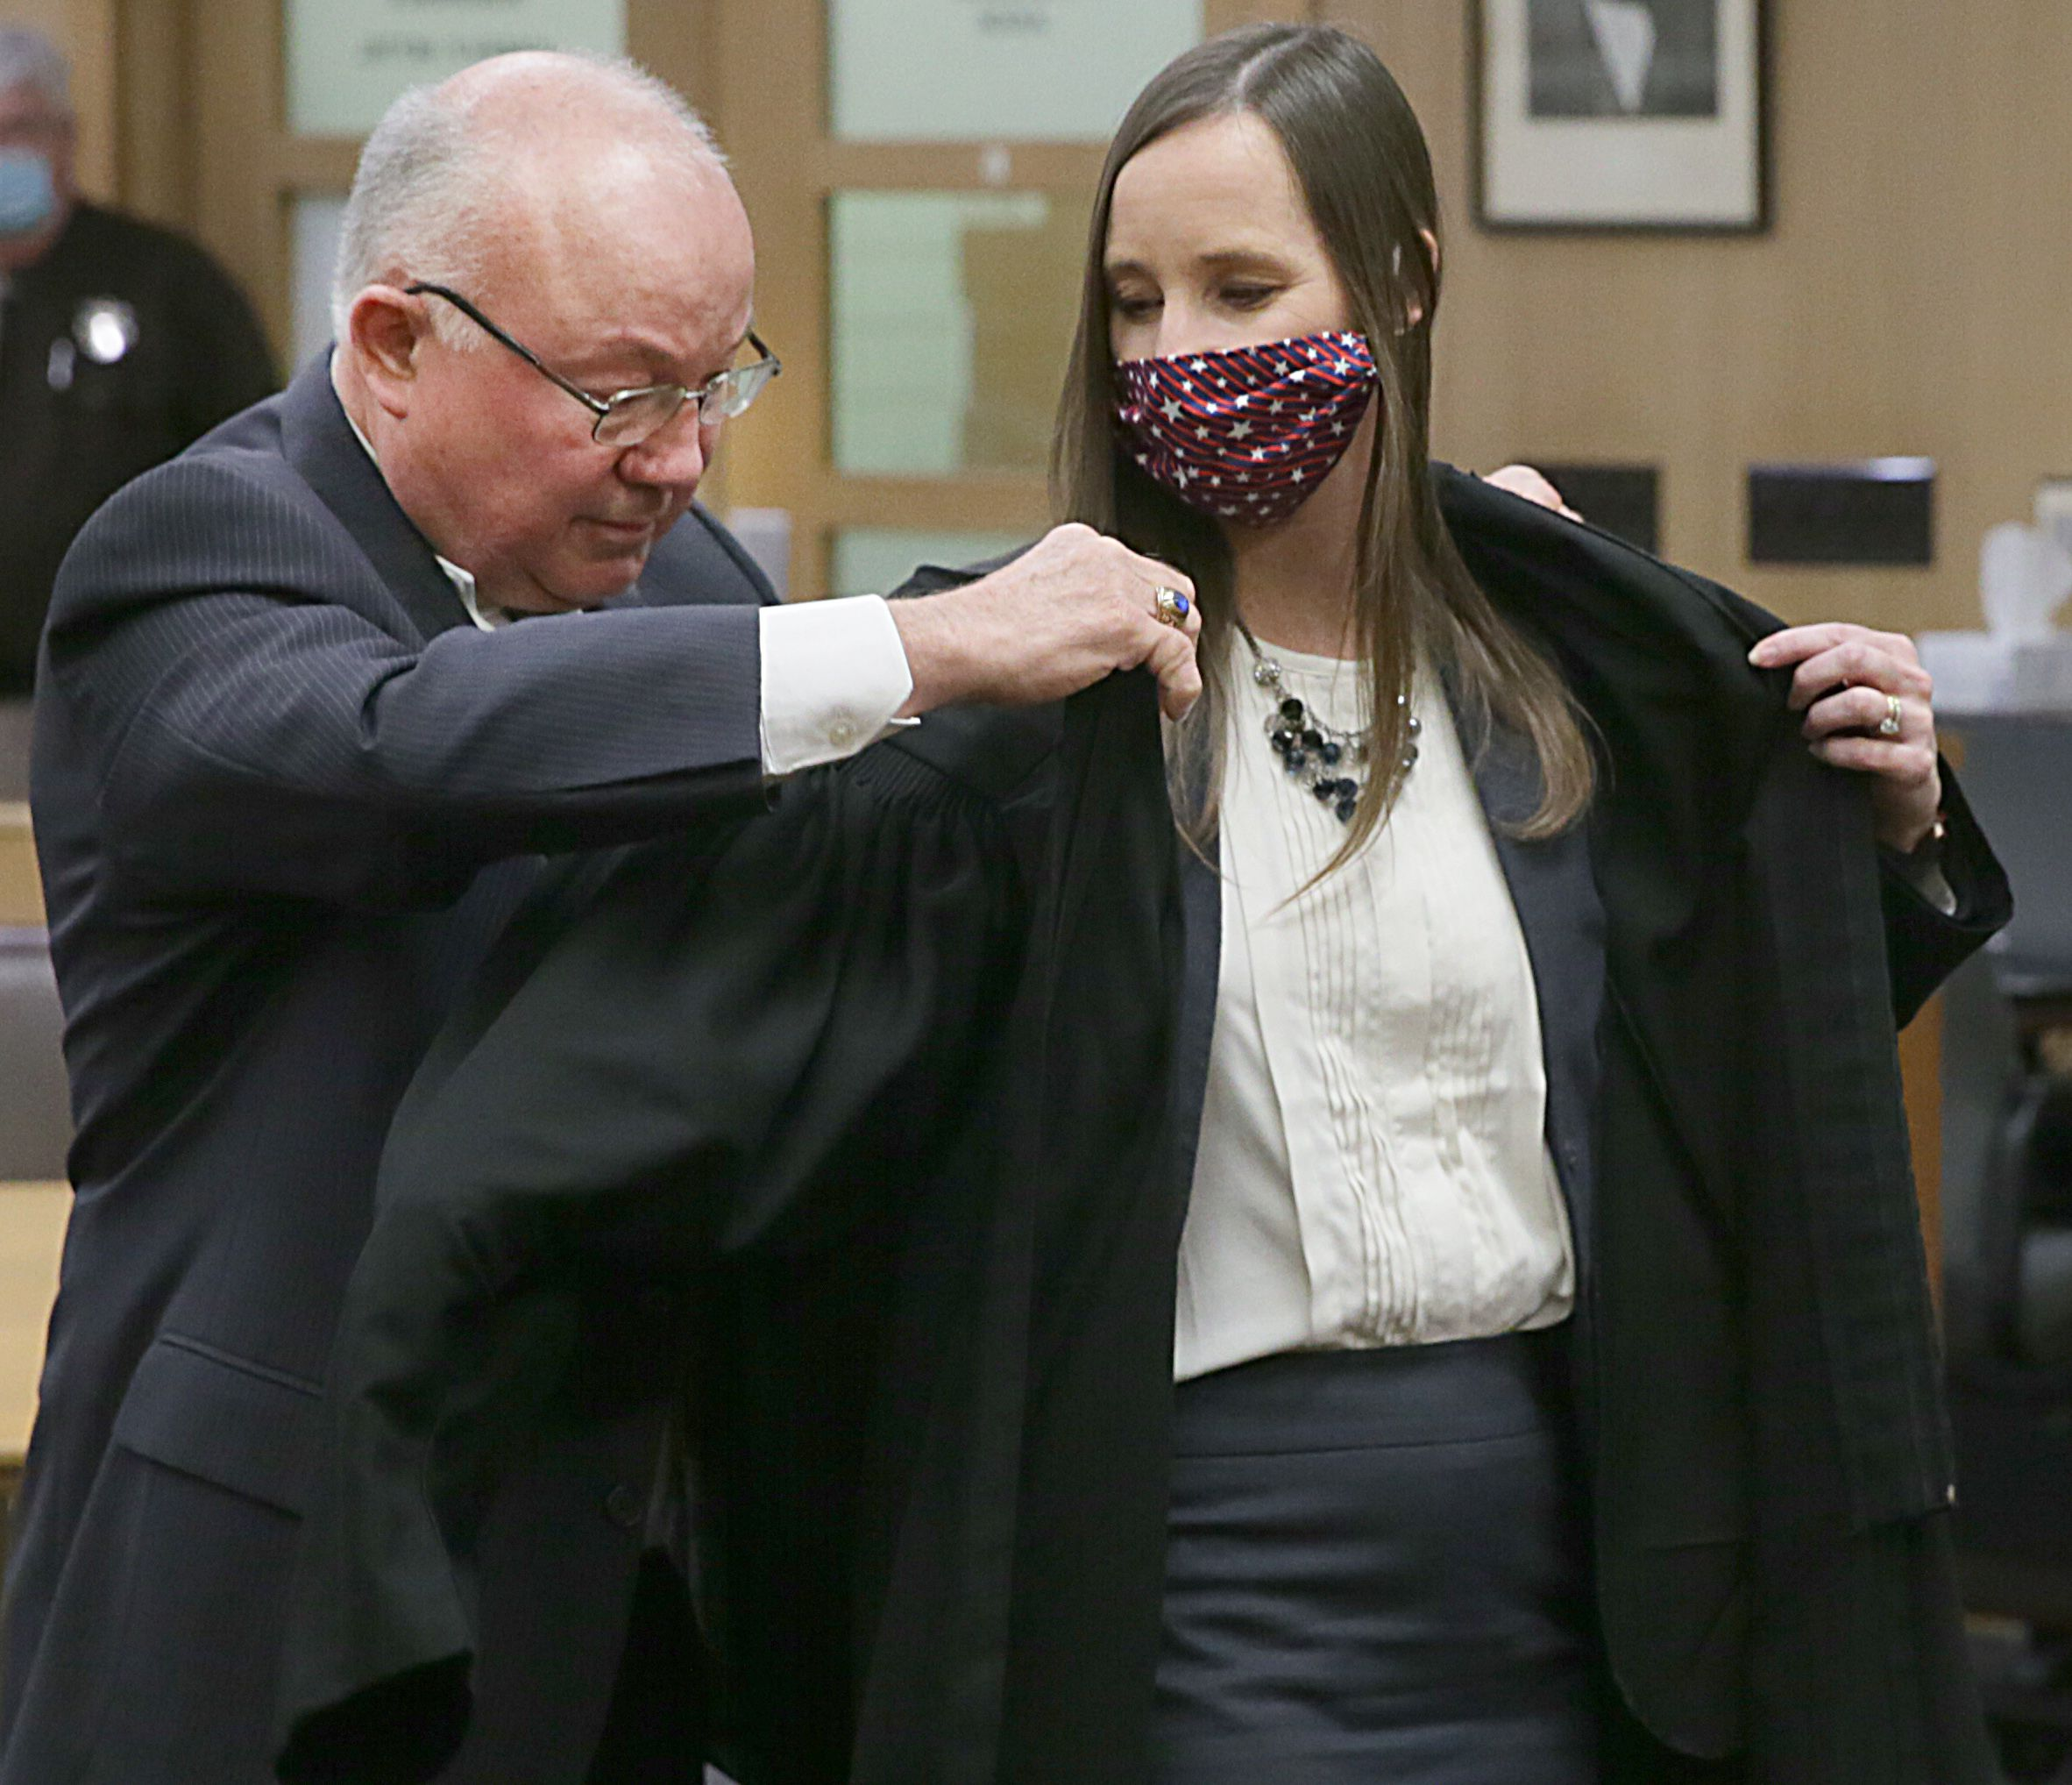 John Cantlin places the judicial robe on his daughter Judge Christina Cantlin-Van Wiggeren shortly after VanWiggeren accepted the oath at the La Salle County Courthouse downtown Ottawa on Monday March 22, 2021.